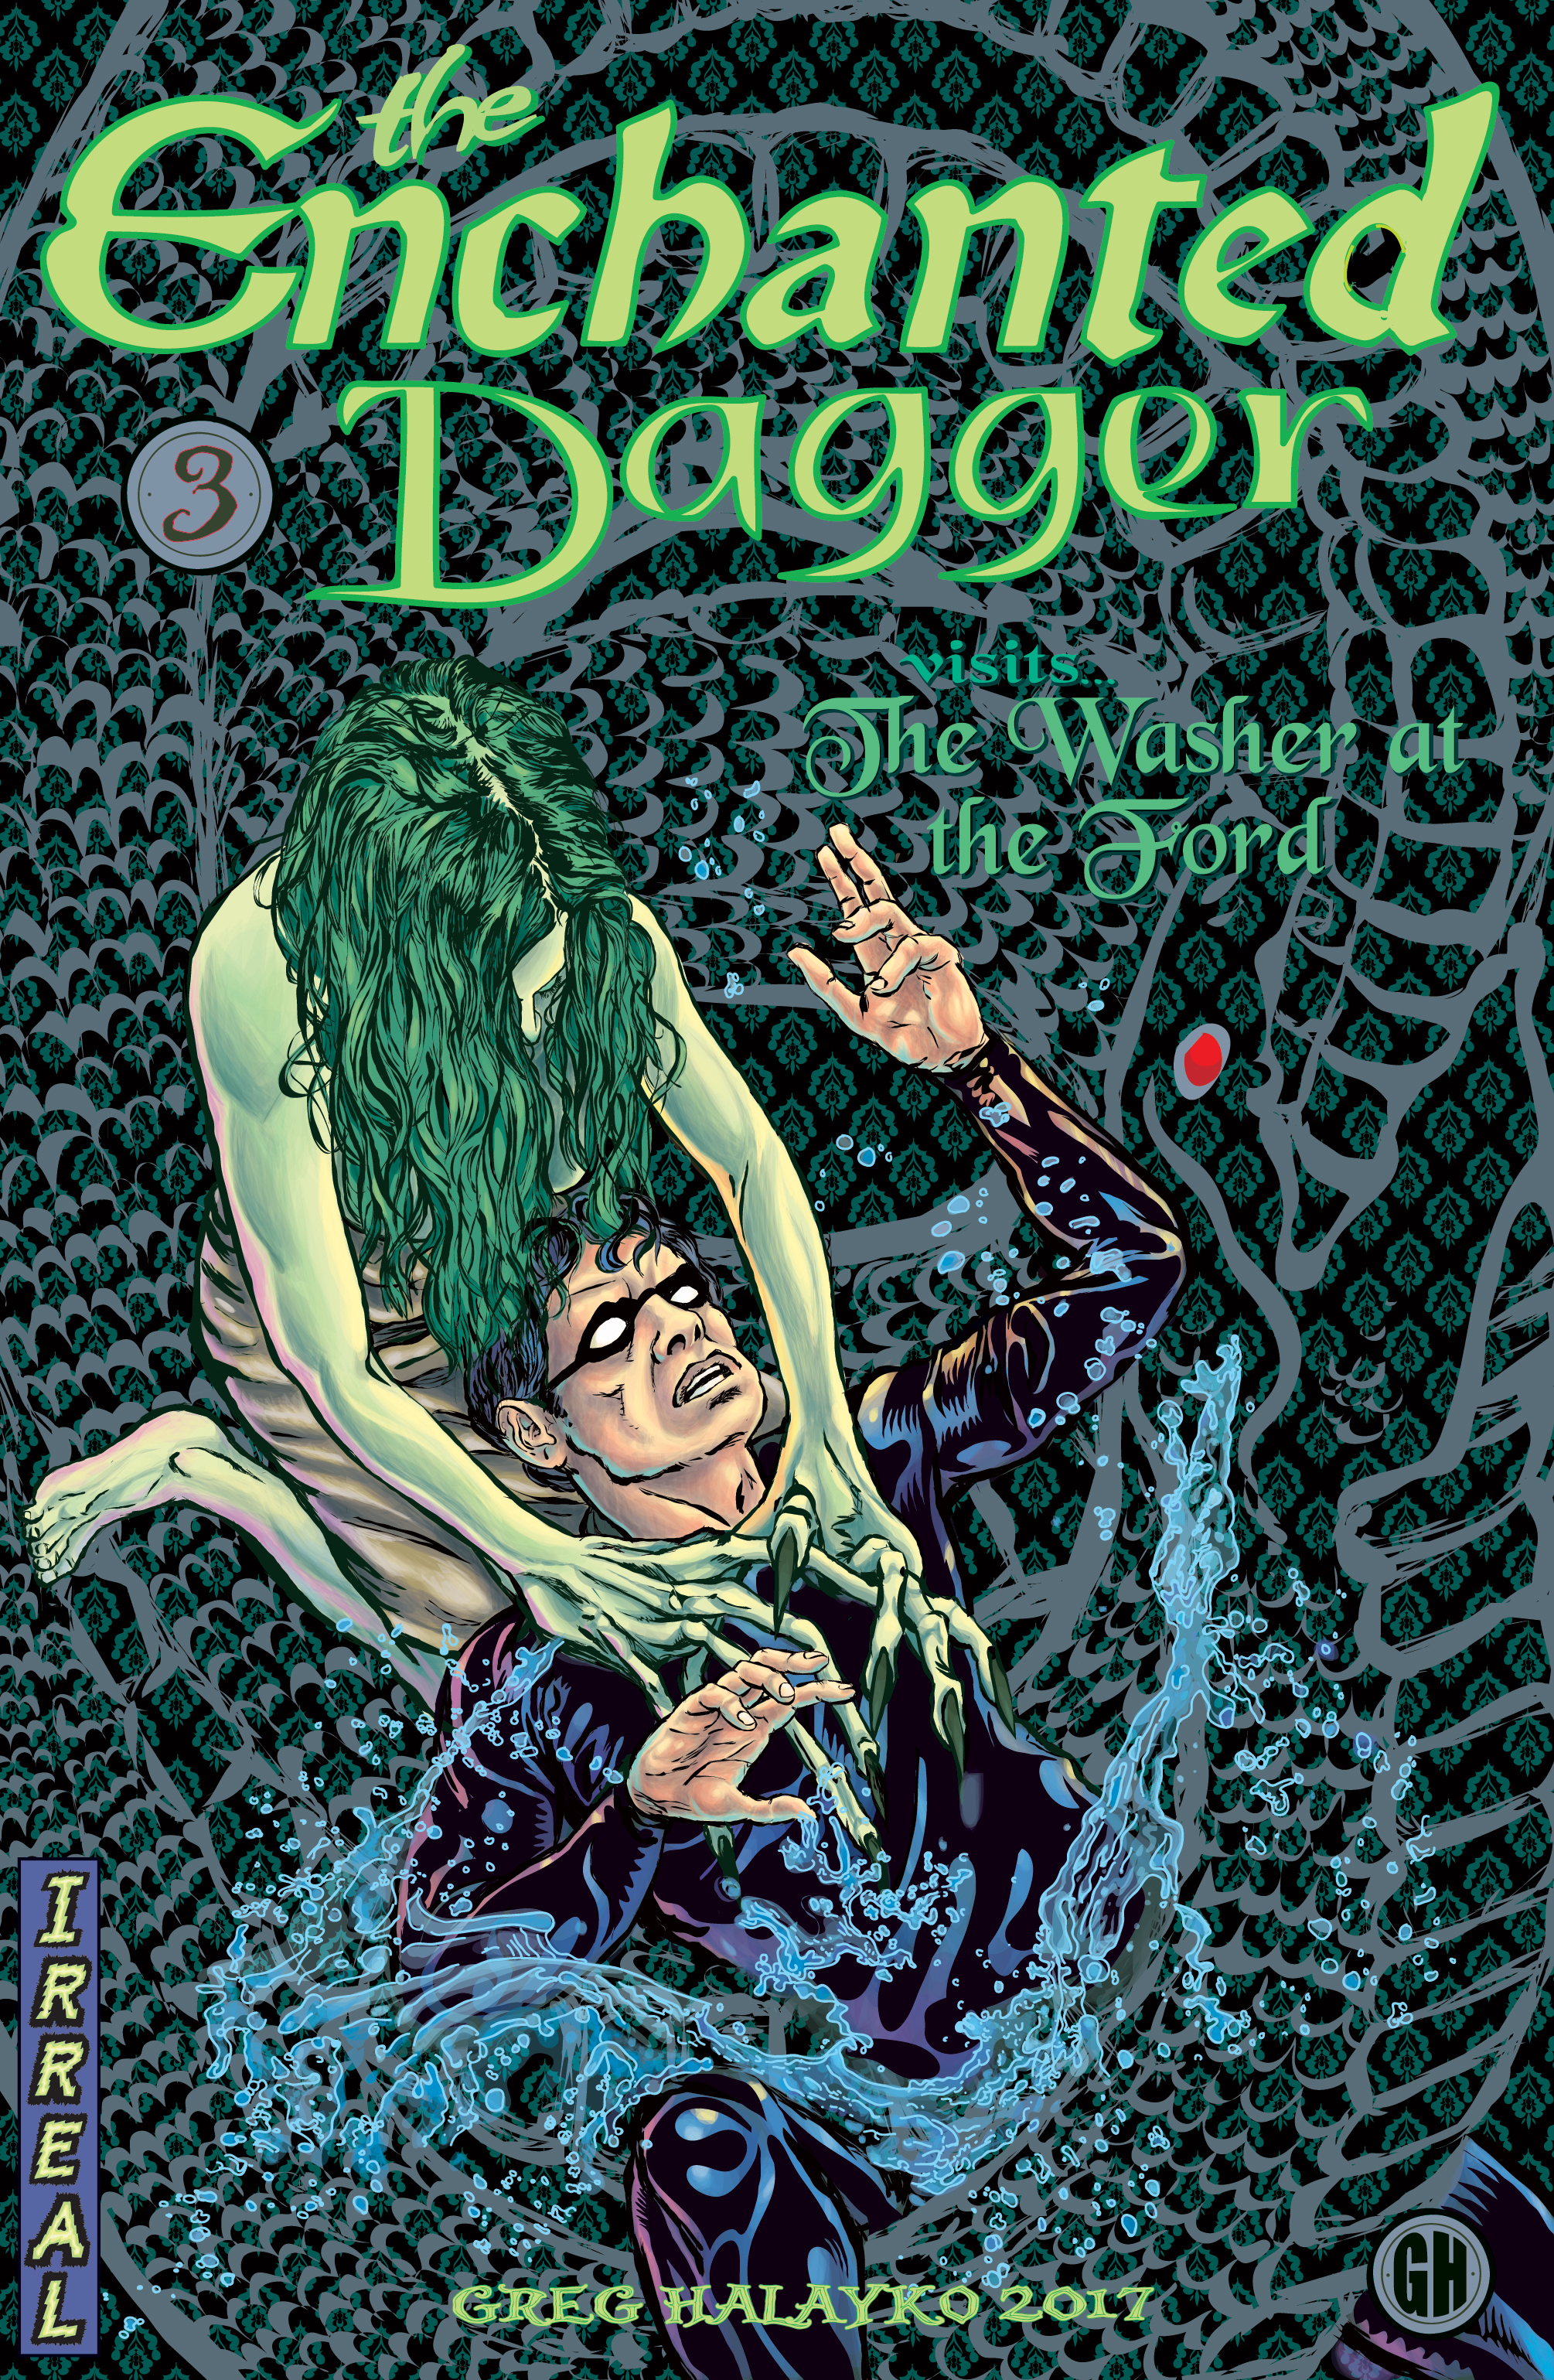 The Enchanted Dagger #3 – Cover